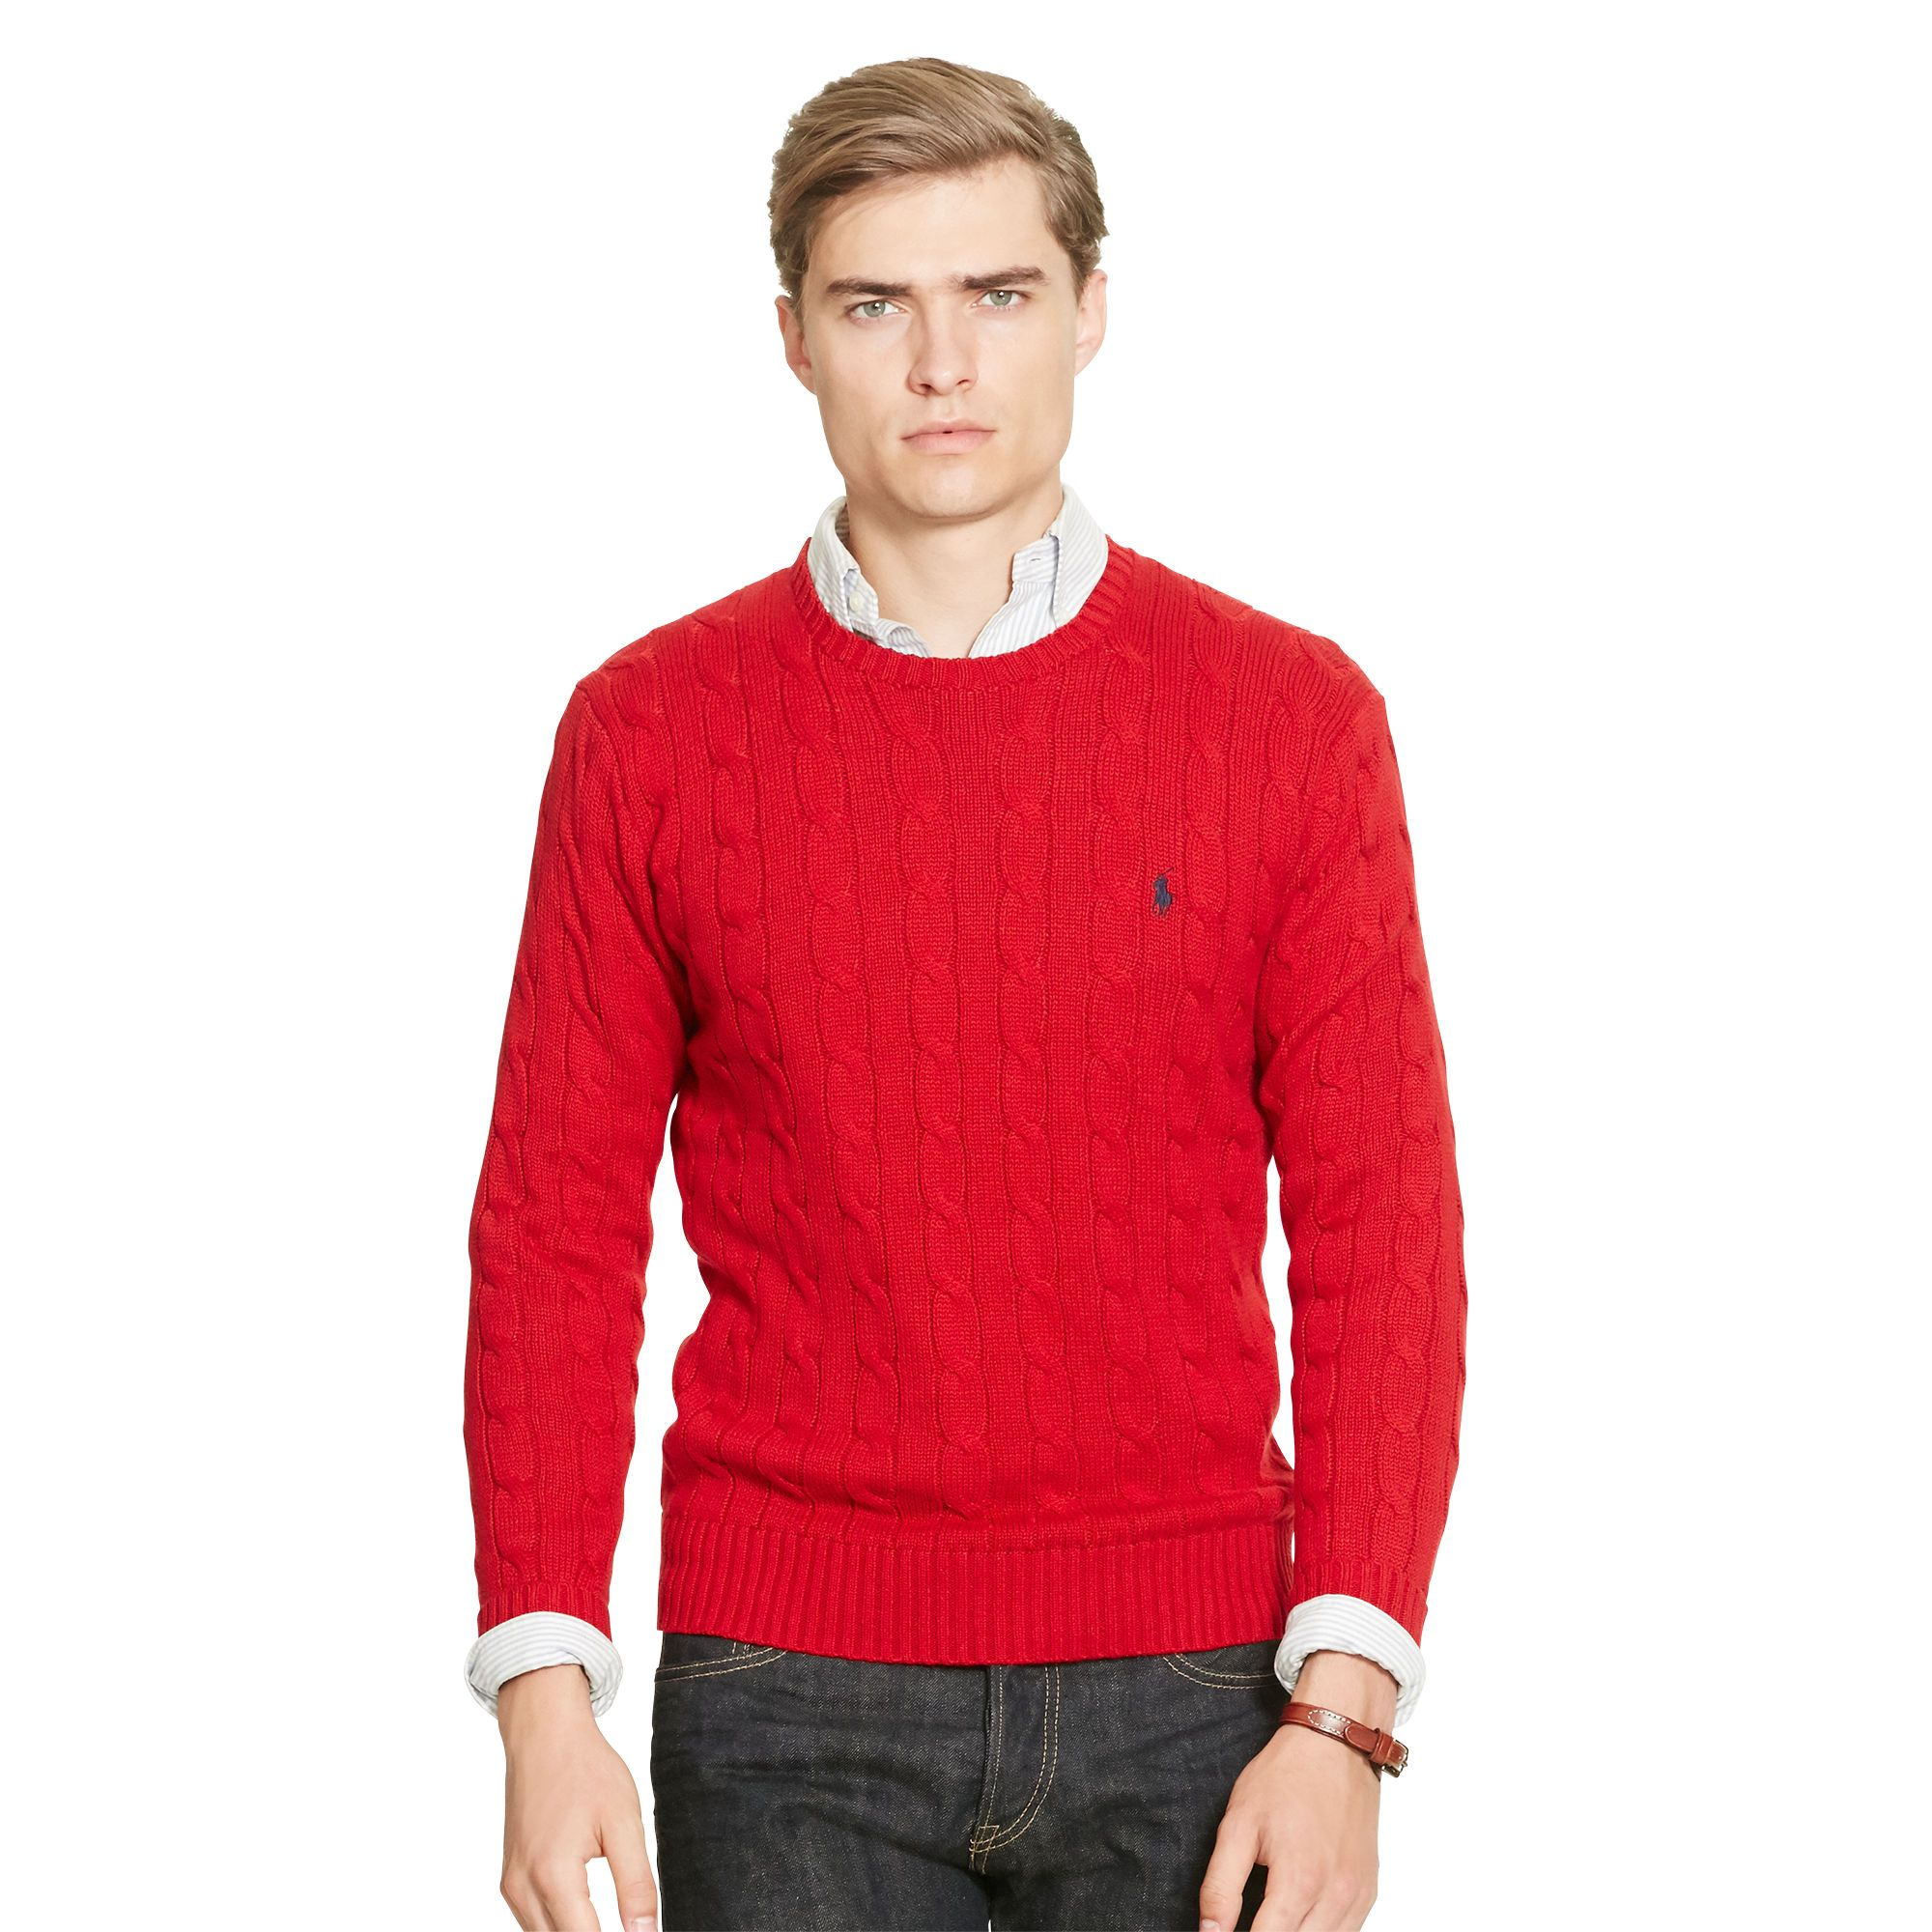 "<p><strong data-redactor-tag=""strong"" data-verified=""redactor"">Cable-Knit Cotton Sweater, £115</strong></p><p>After a long day on the mountain, he'll be relieved to pull on this classic jumper and hit the bars.<span class=""redactor-invisible-space"" data-verified=""redactor"" data-redactor-tag=""span"" data-redactor-class=""redactor-invisible-space""></span></p>"